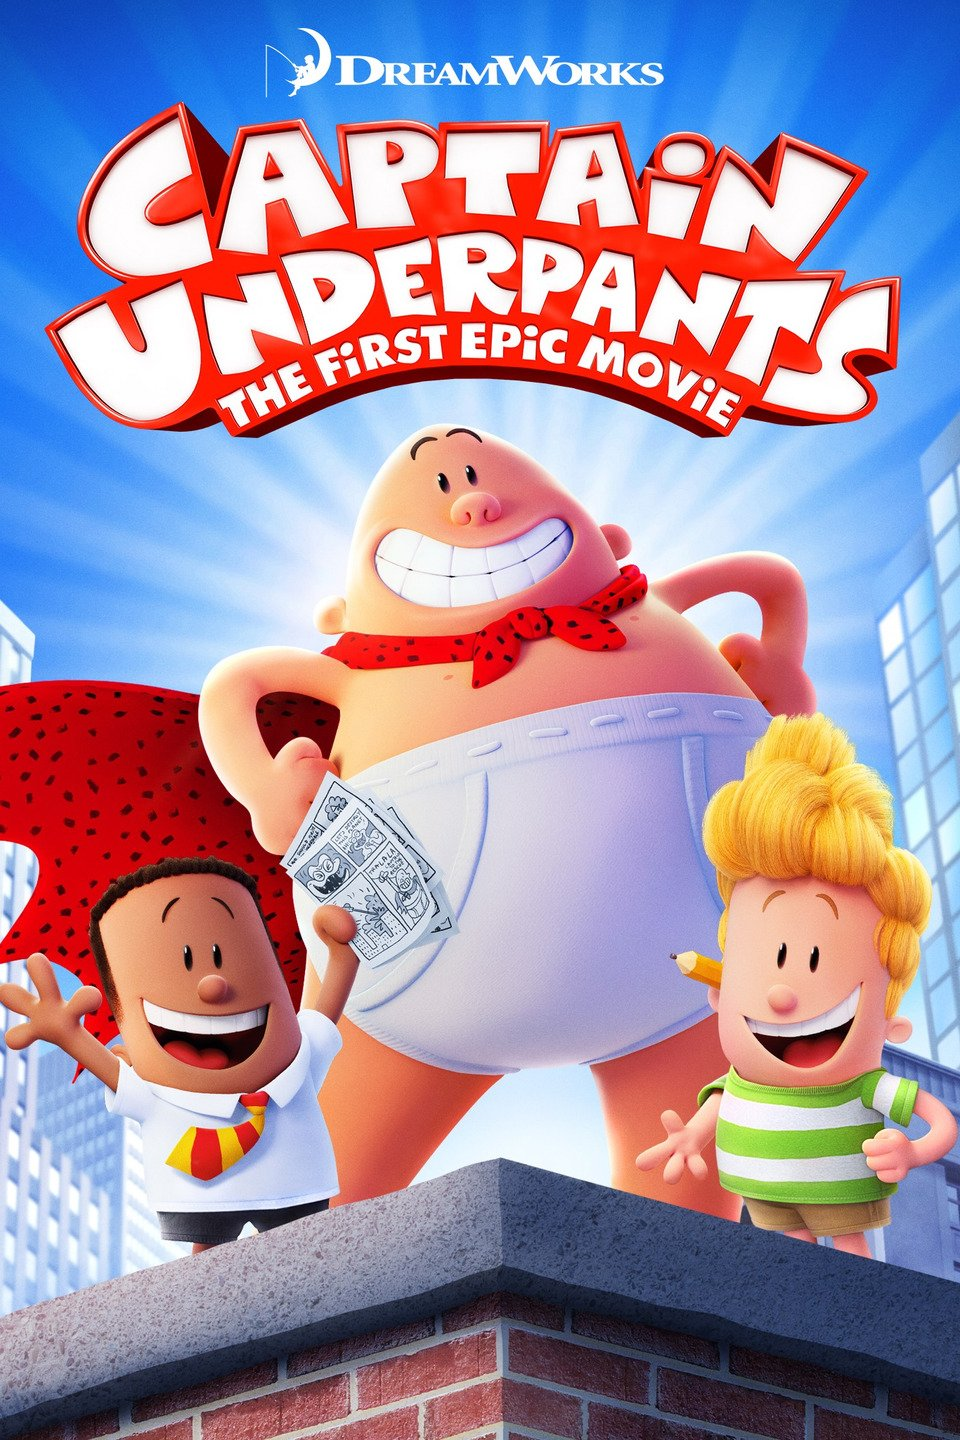 opening to captain underpants: the first epic movie 2002 vhs